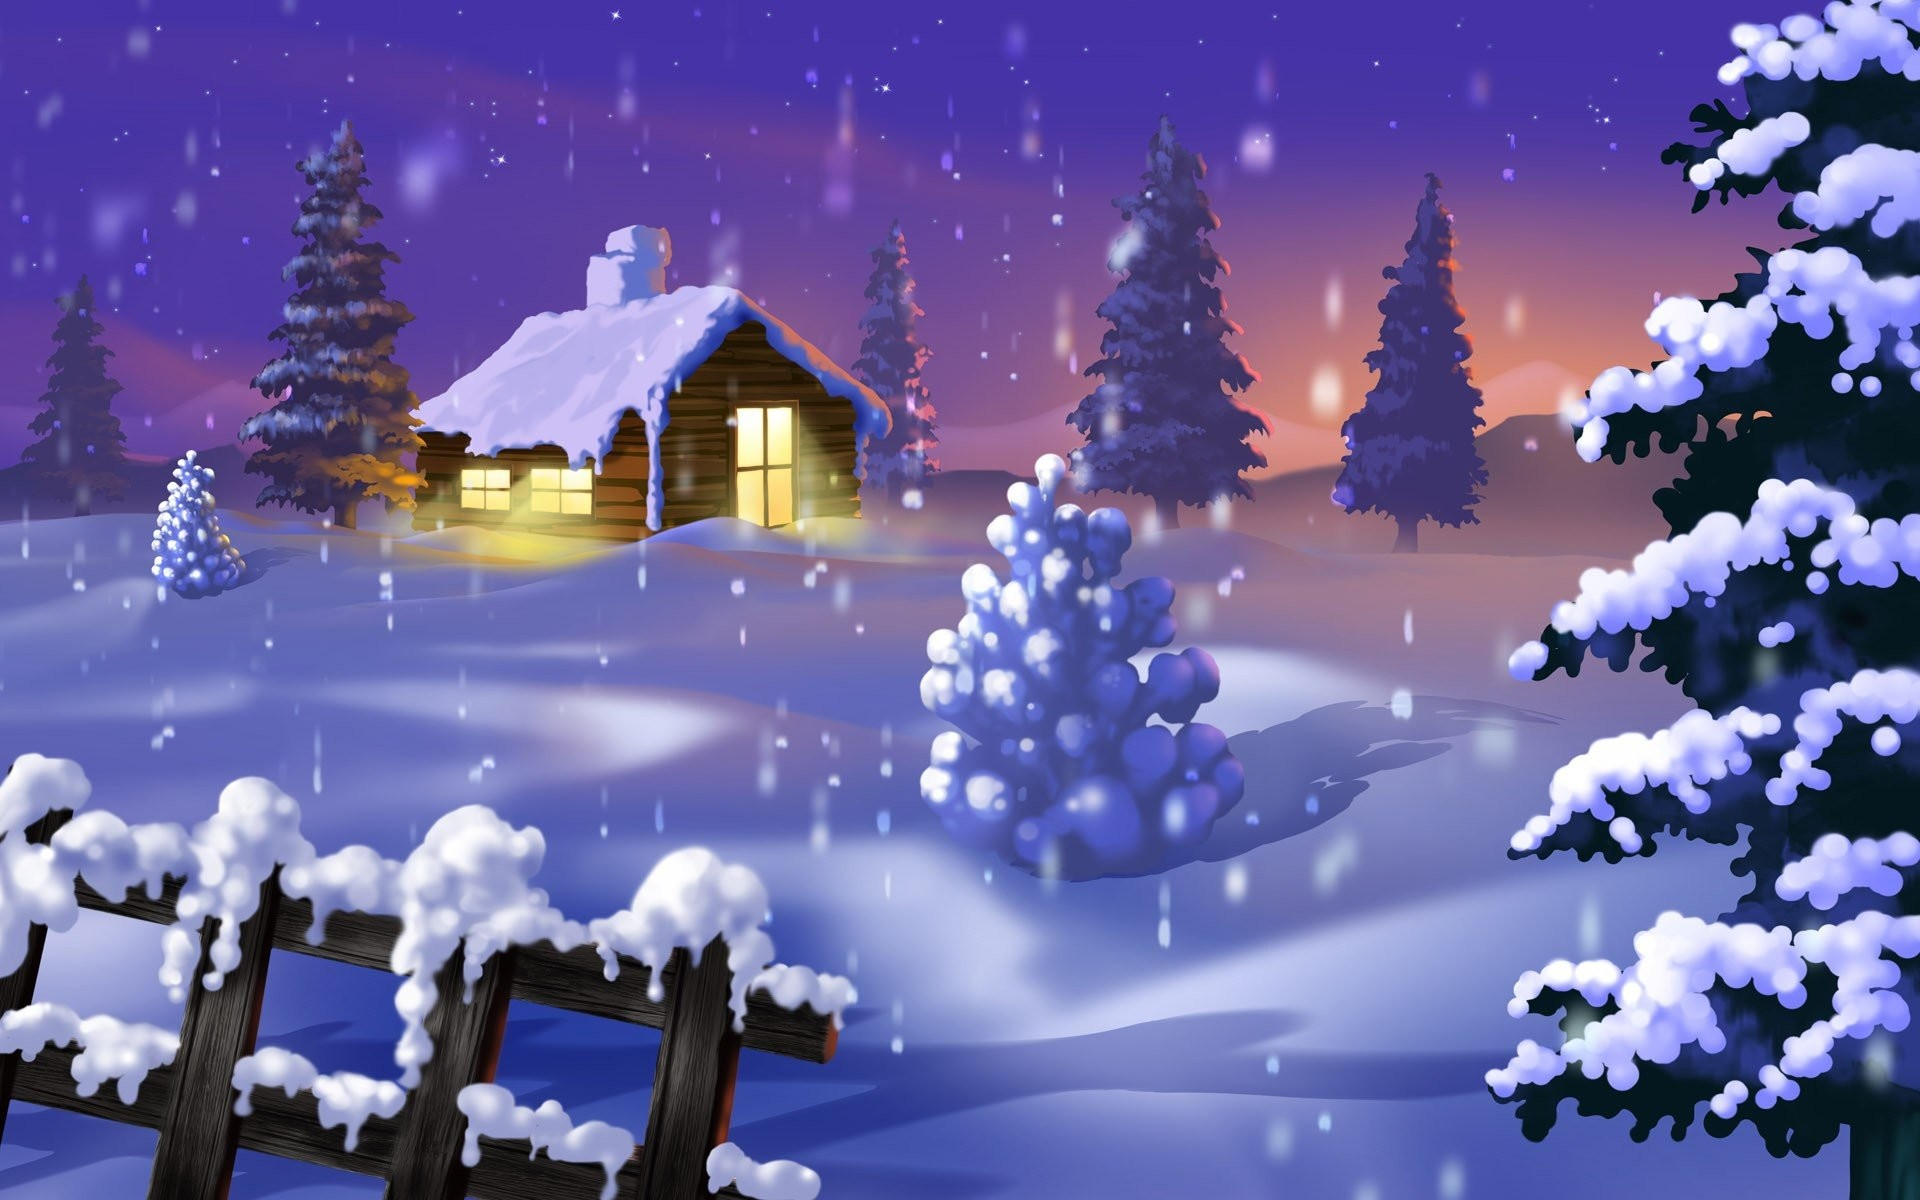 1920x1200 Top 7 Beautiful Winter Snow Live Wallpapers for Android